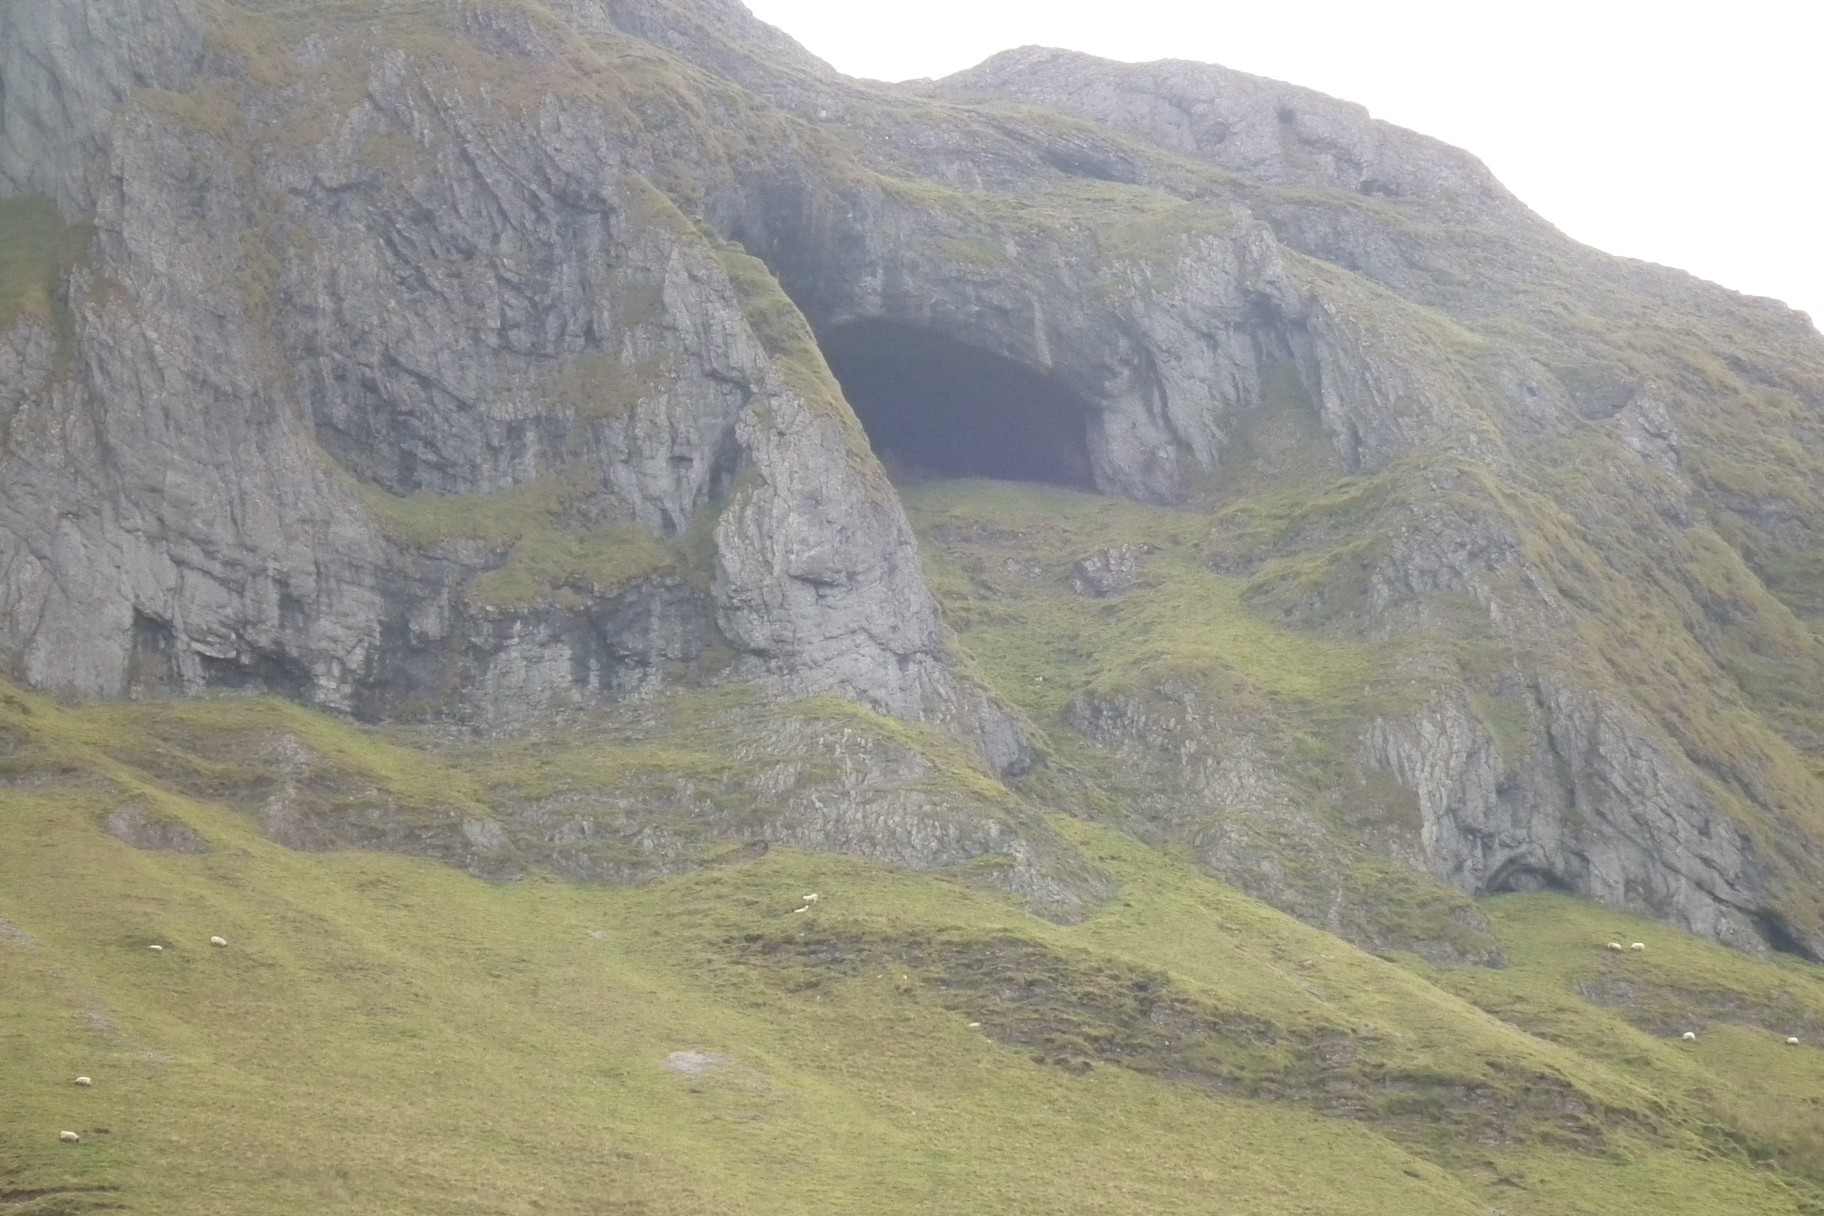 Diarmuid & Grainne's cave at the Gleniff Horseshoe